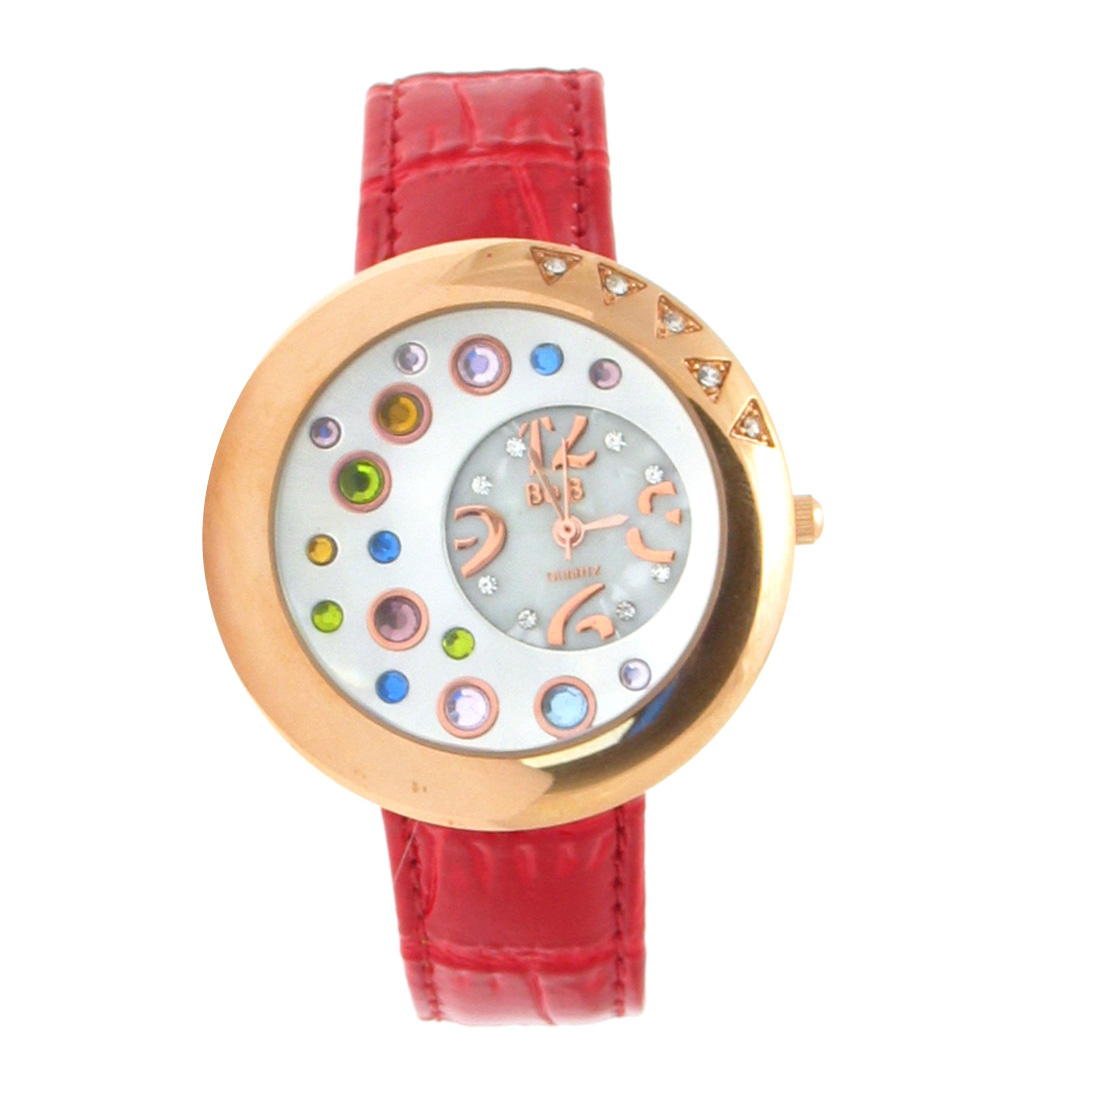 Fashion Jewelry GOLDENen Watchcase with Colorful Crystal Style Quartz Wrist Watch - Red Wristband